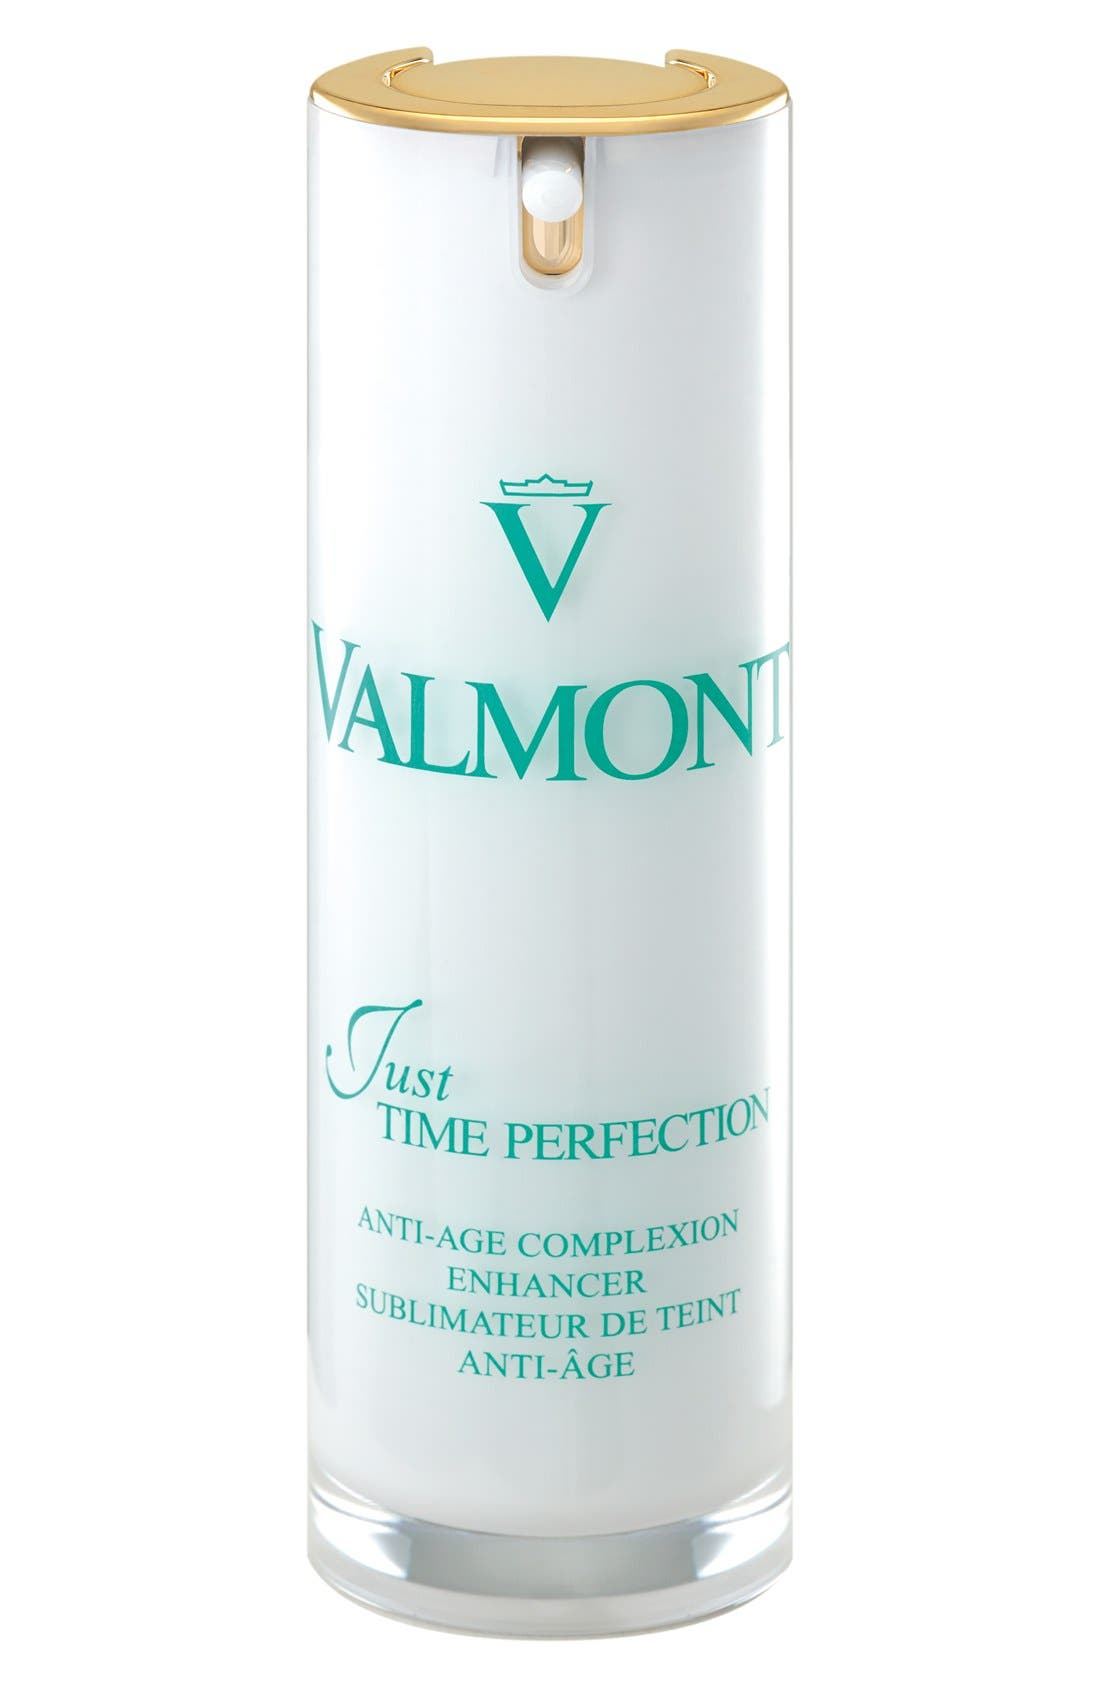 Valmont 'Just Time Perfection' Anti-Aging Complexion Enhancer SPF 25